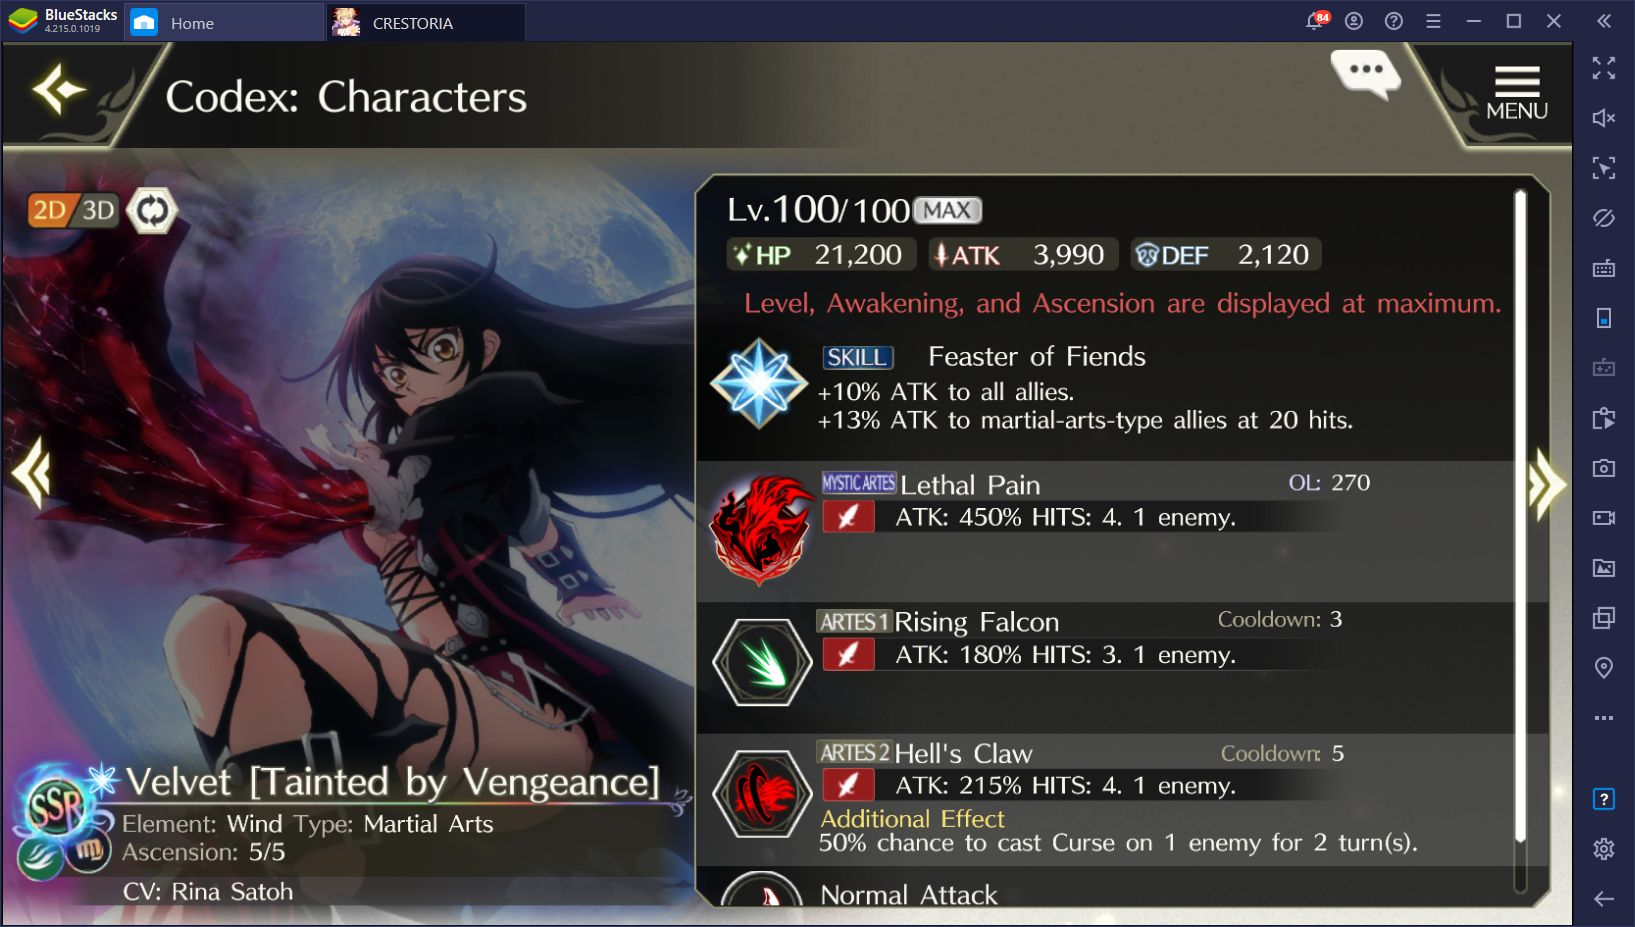 Tales of Crestoria Reroll Guide – How to Summon the Best Character From the Start